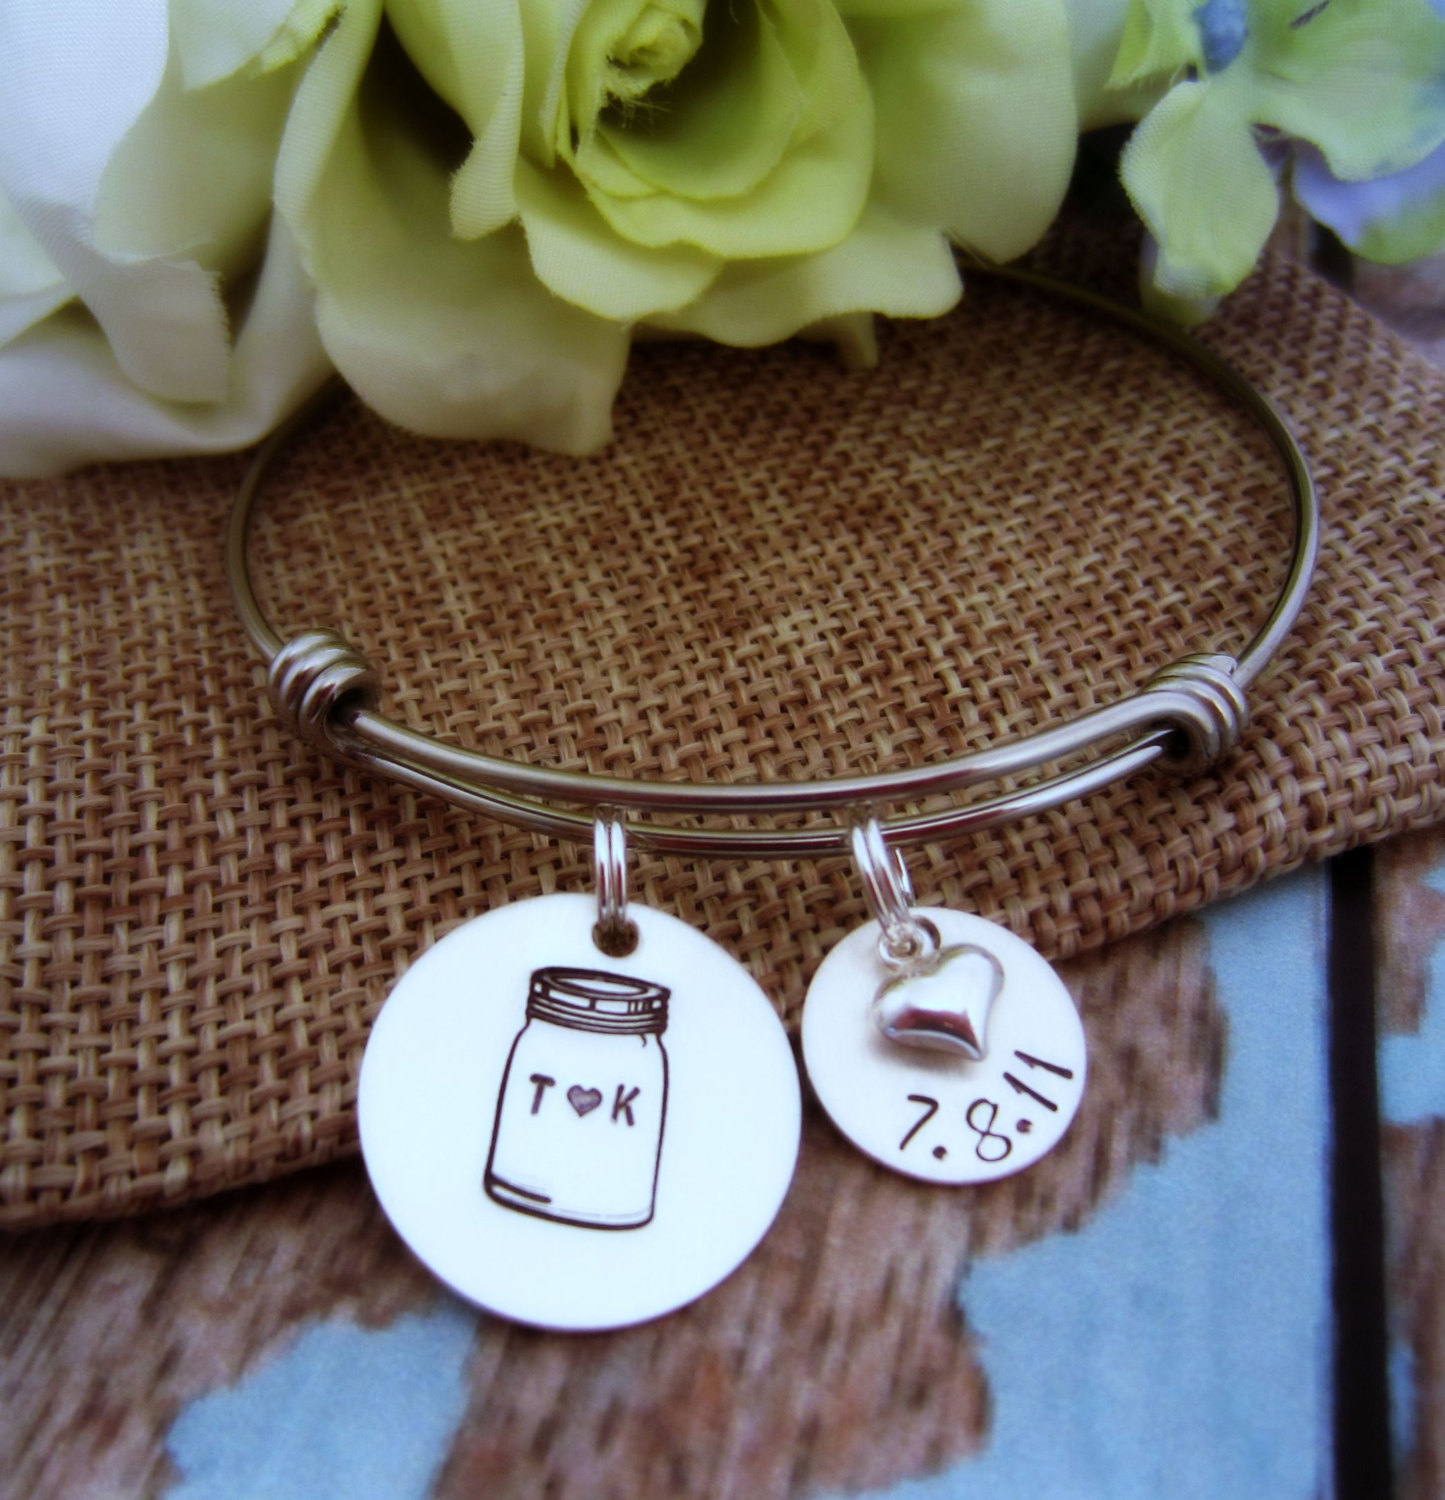 mason jar jewelry: bracelet with wedding date